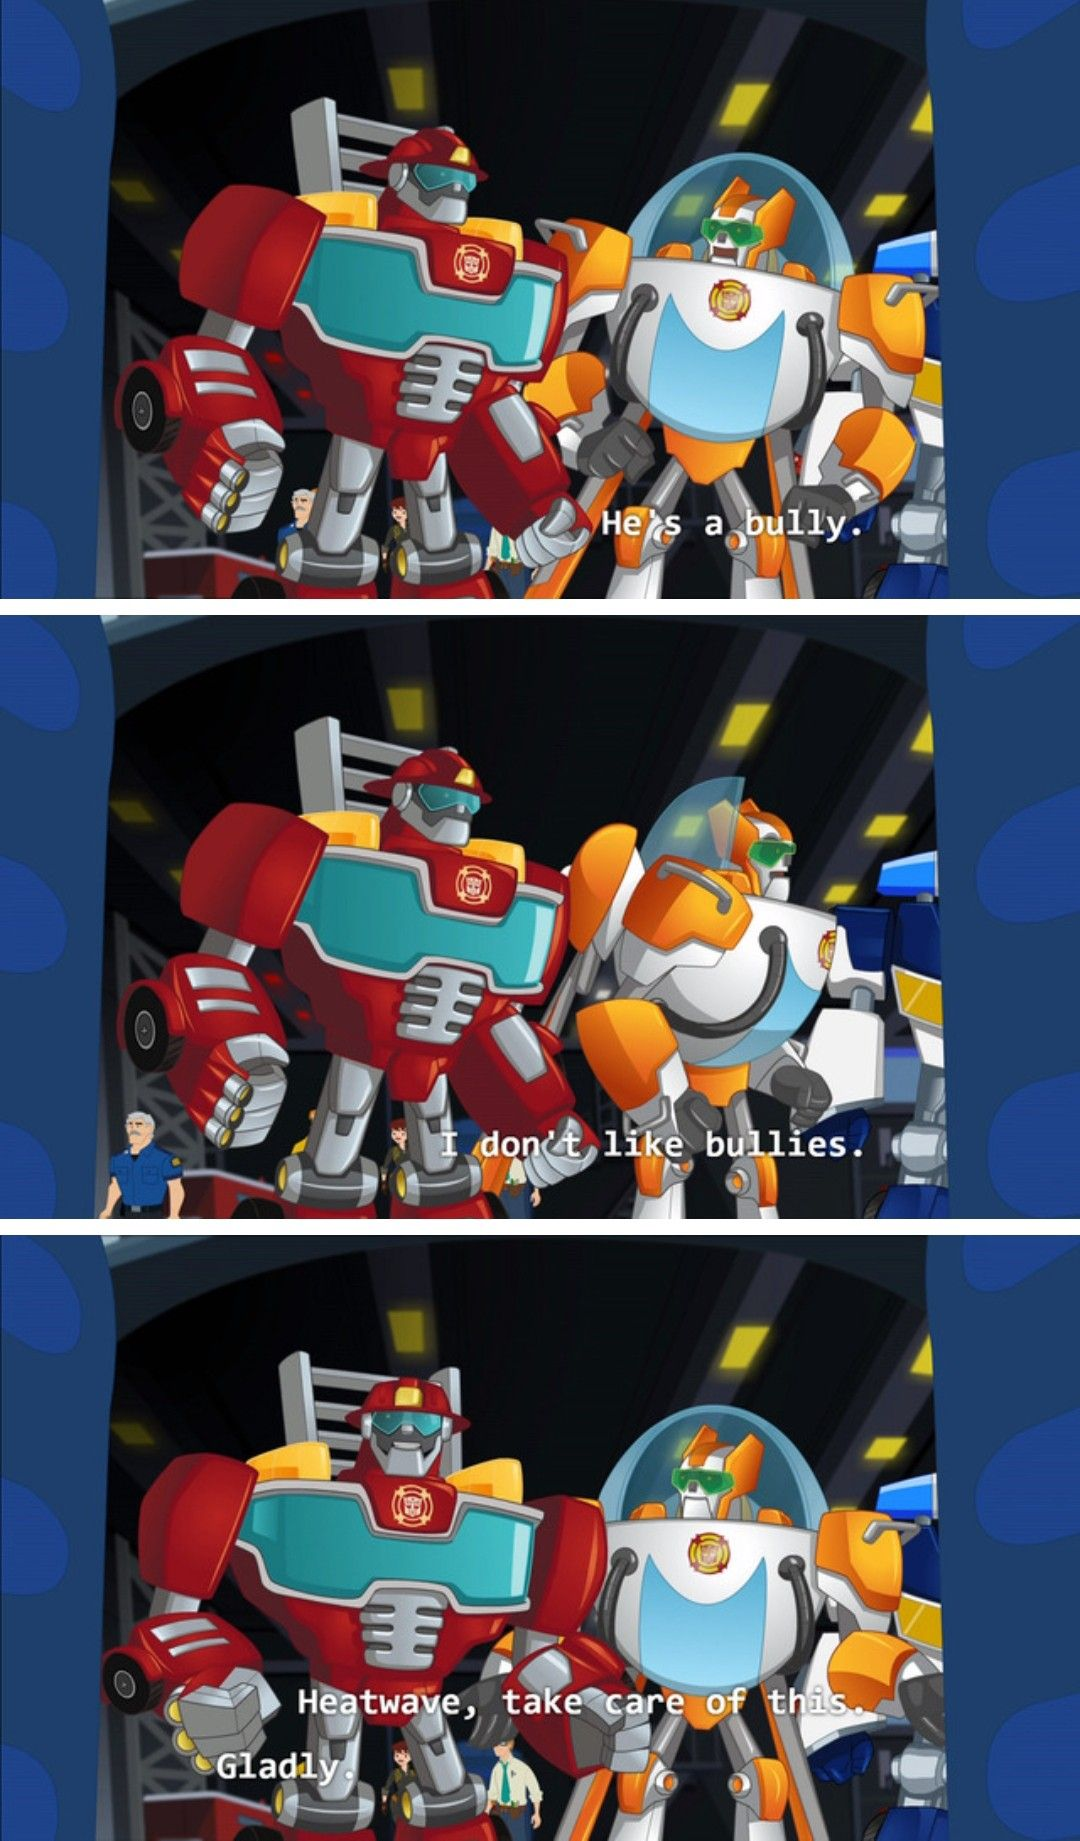 Heatwave Definitely Kills The Spiders In This Relationship Transformers Rescue Bots Transformers Memes Transformers